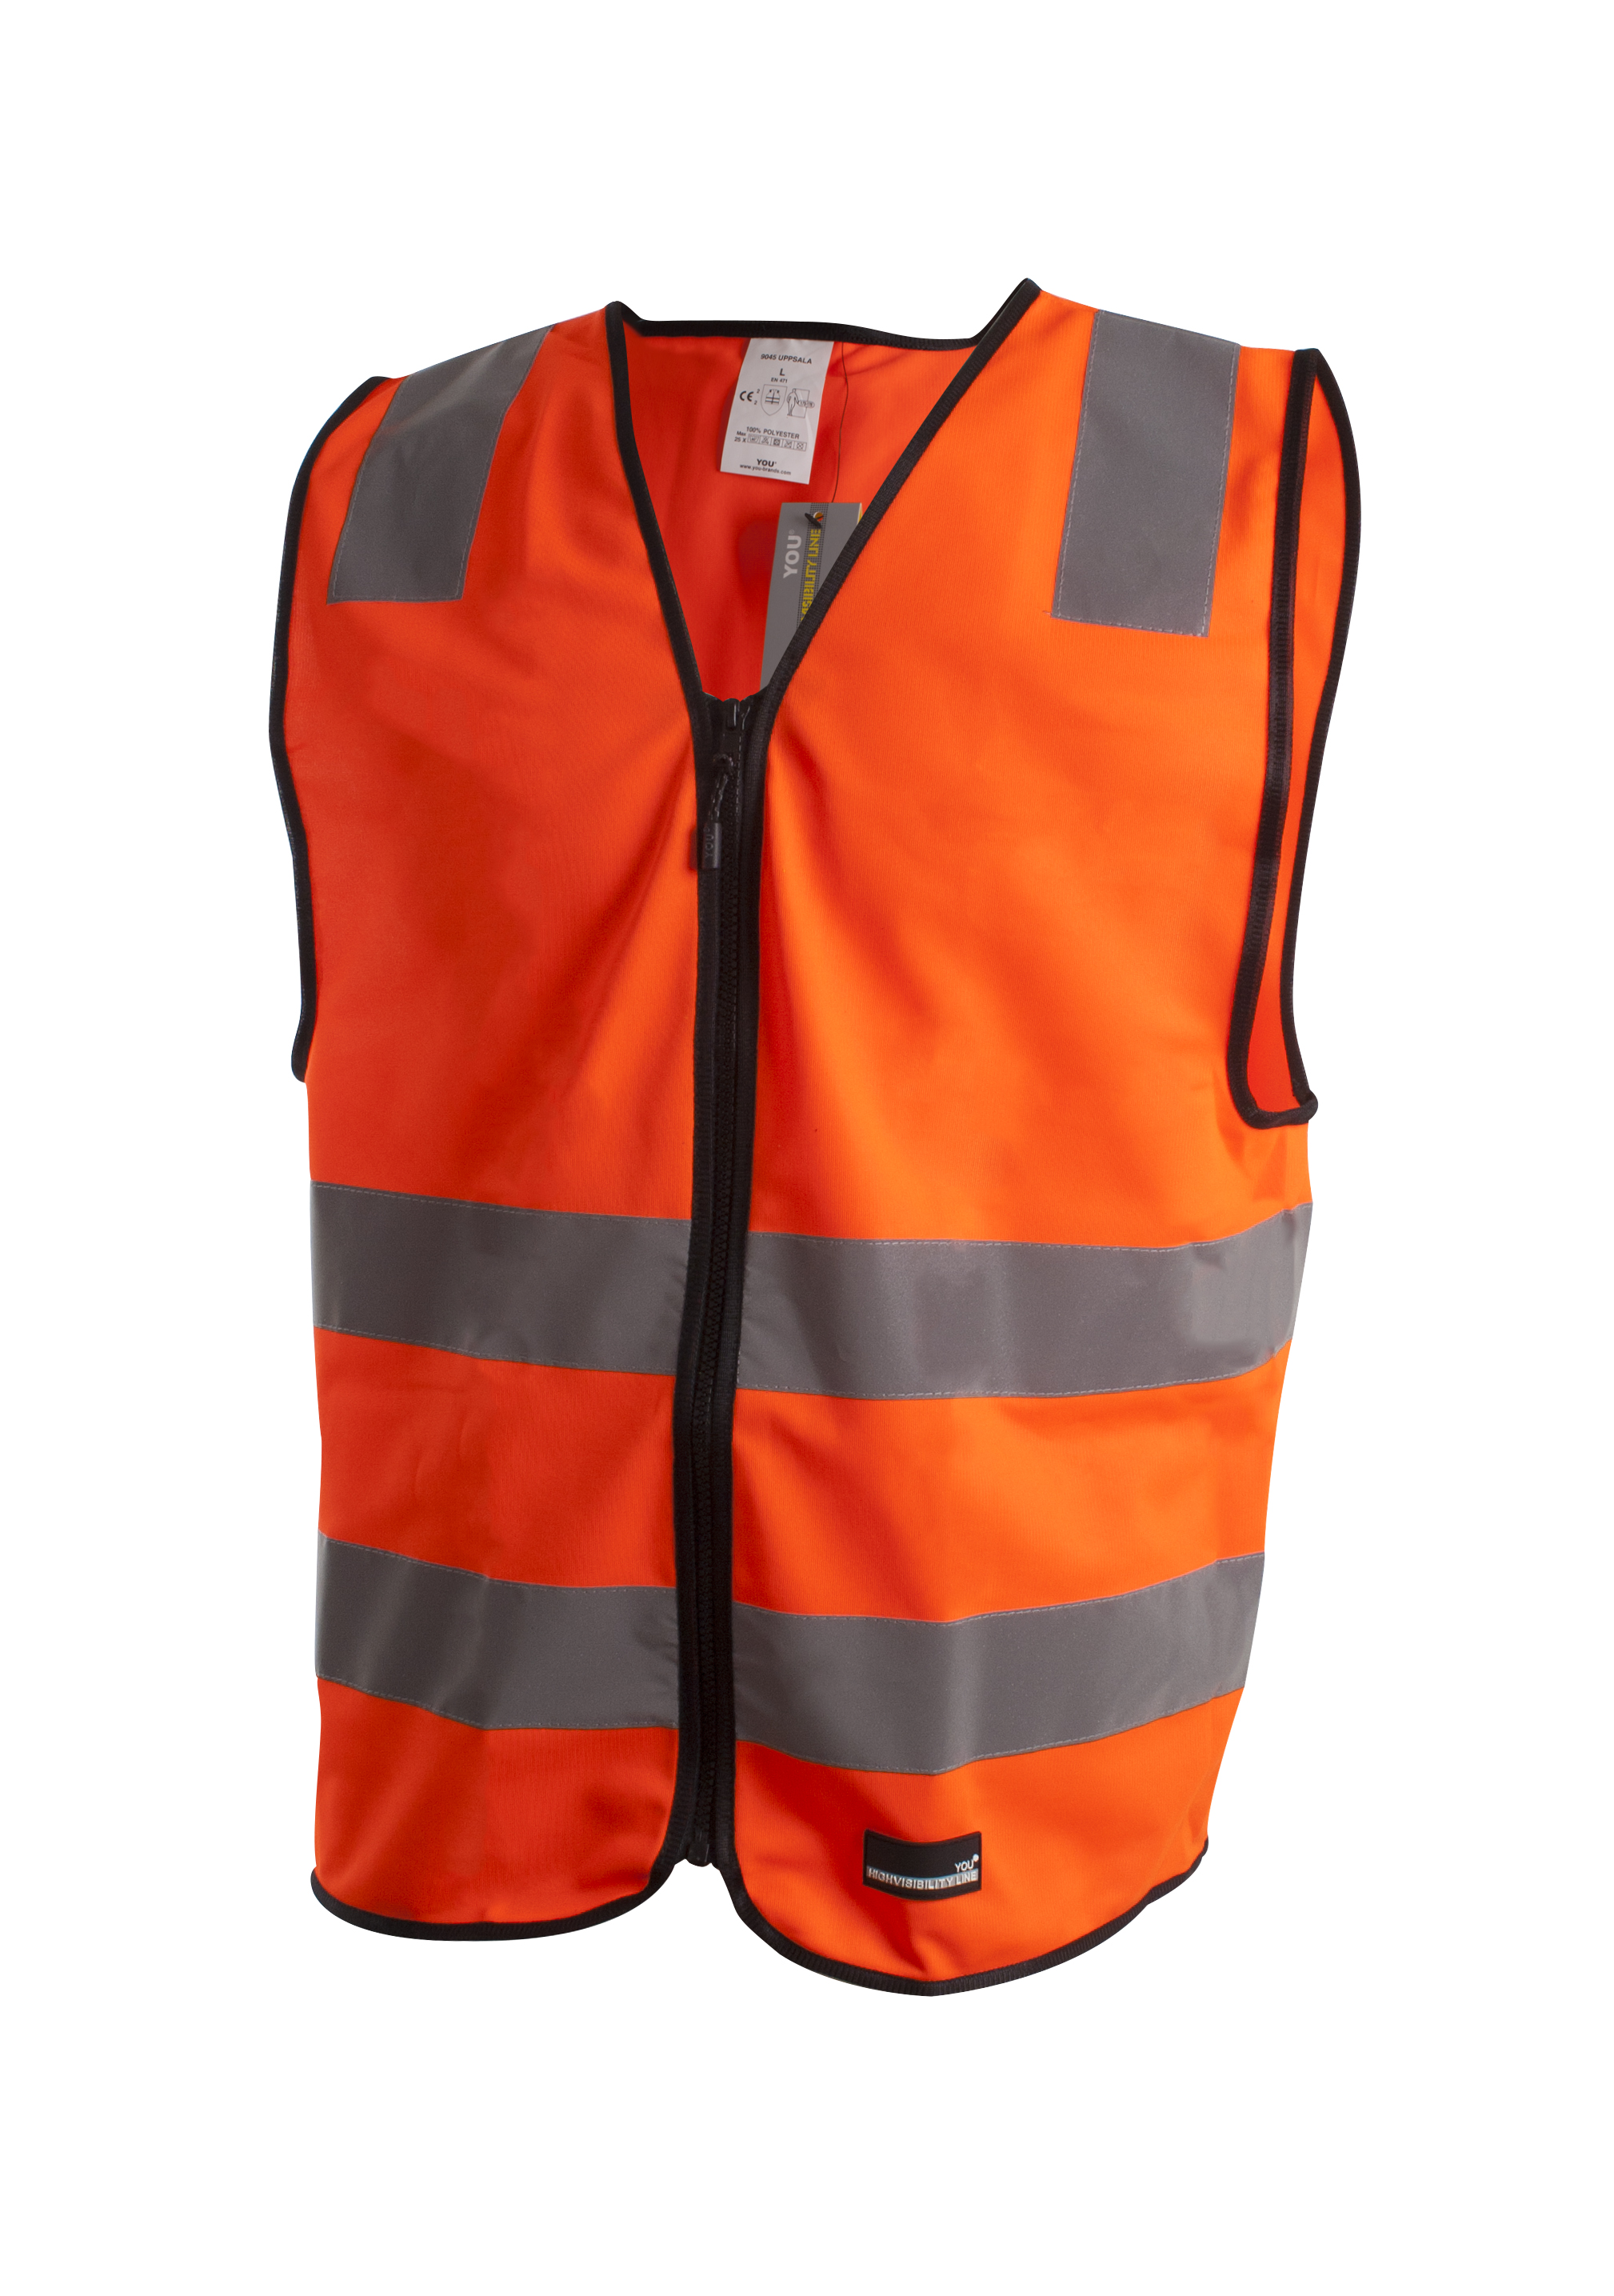 3fac1ee8 Refleksvest Uppsala - MM Profil AS